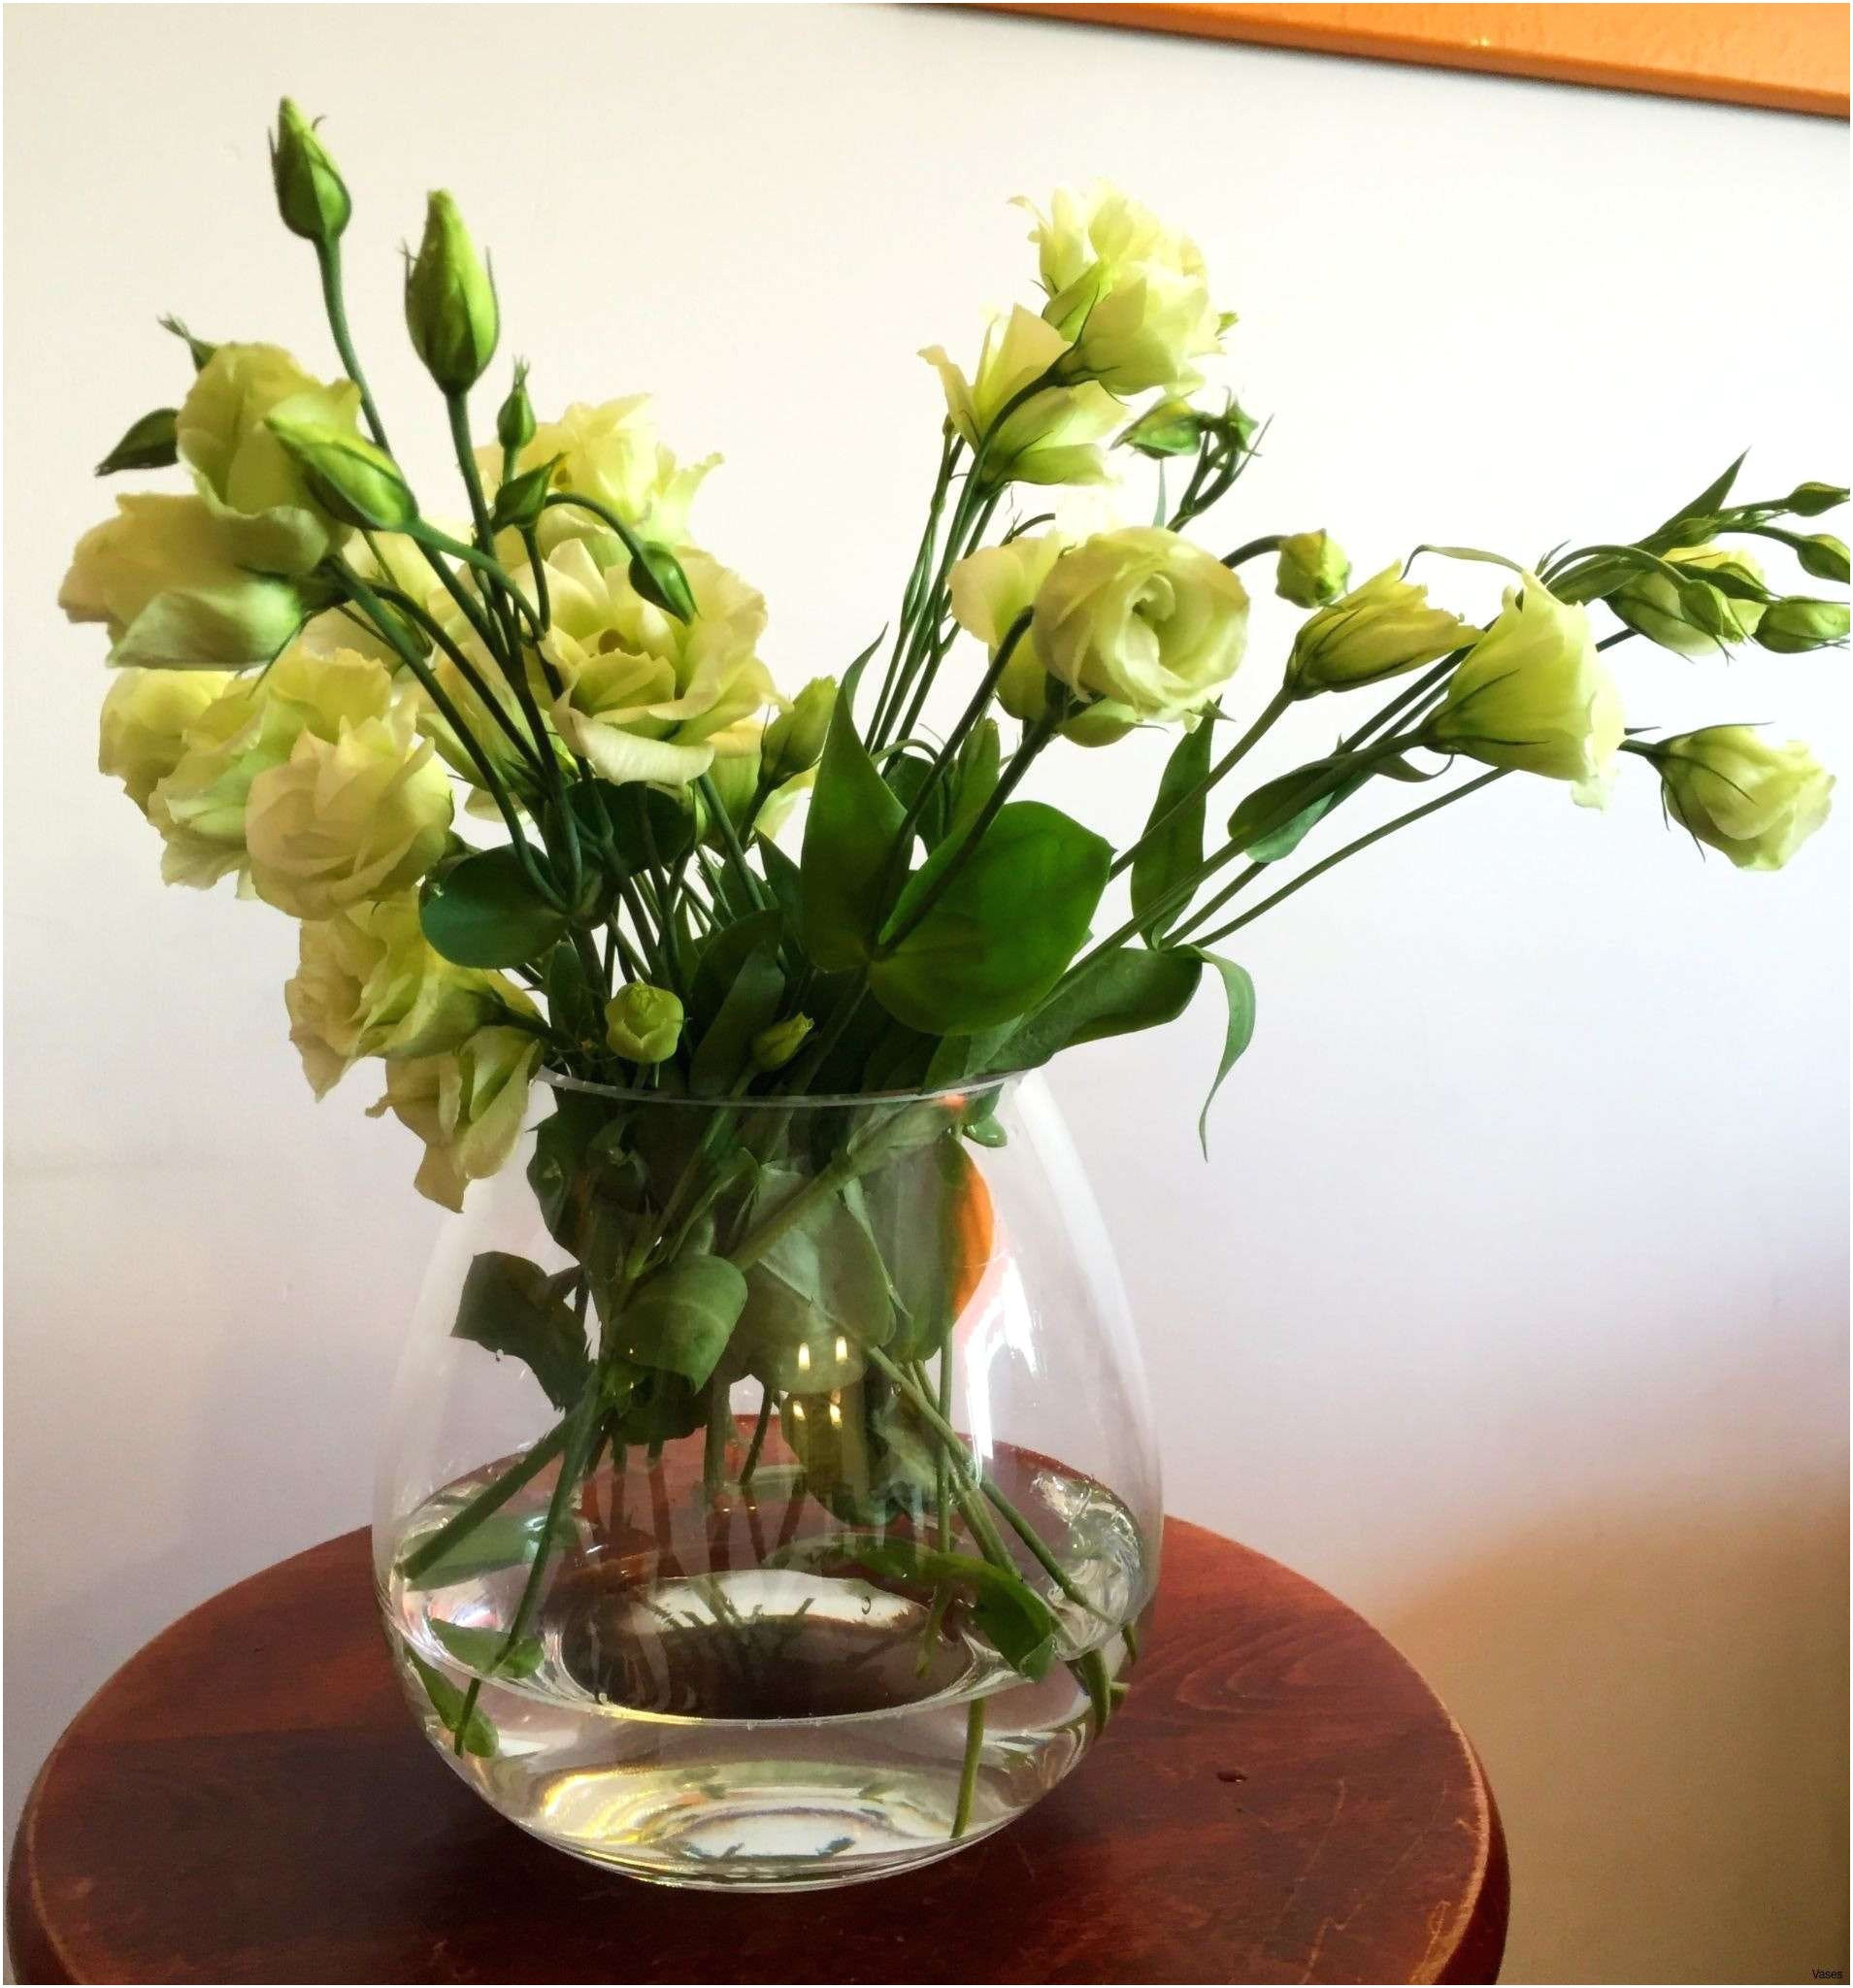 fenton hobnail vase of tall green glass vase image tiger height awful flower vase table 04h within tall green glass vase image tiger height awful flower vase table 04h vases tablei 0d clipart